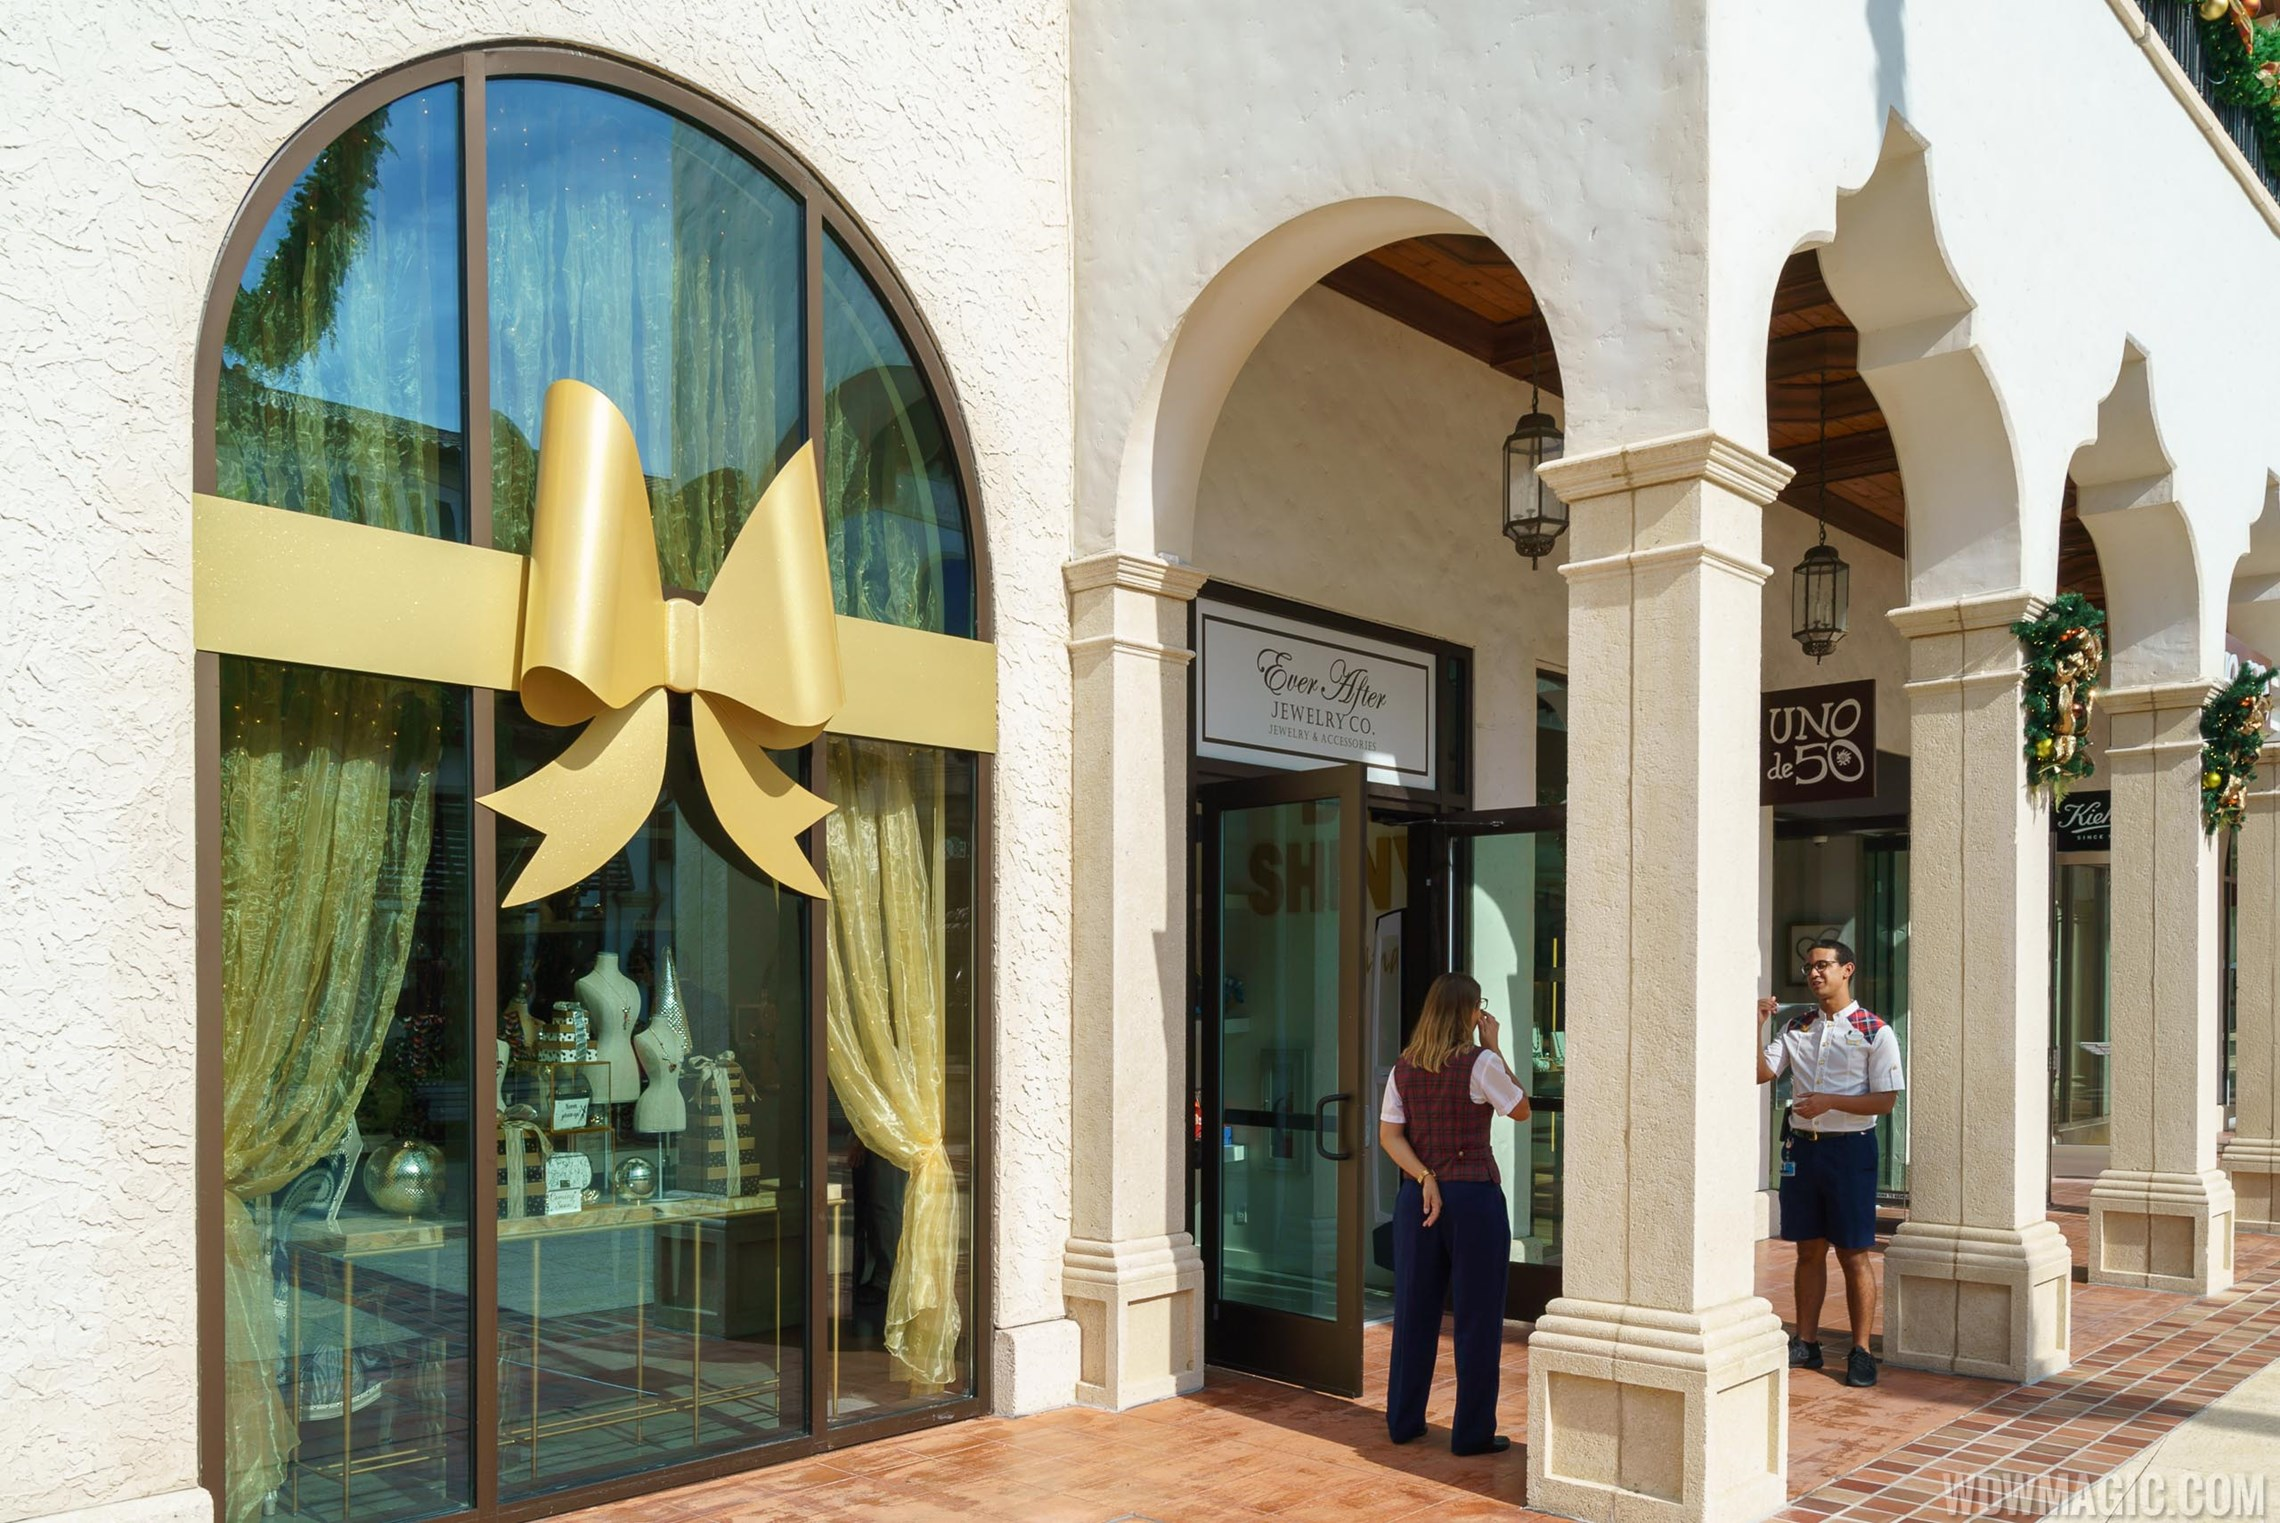 PHOTOS - 'Ever After Jewelry Co.' now open at Disney Springs